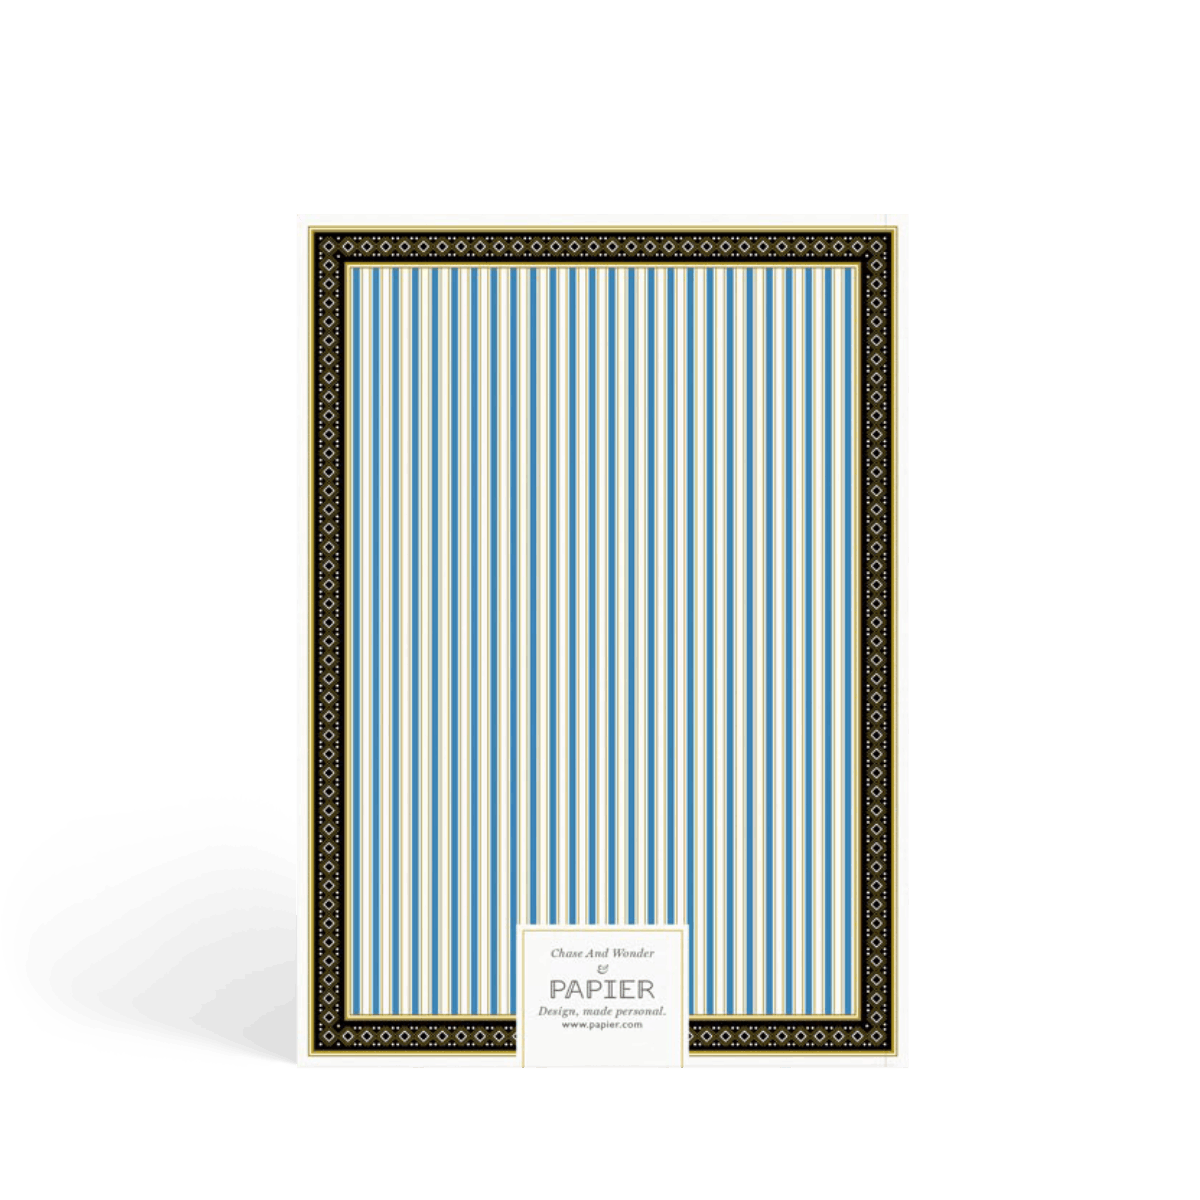 Https%3a%2f%2fwww.papier.com%2fproduct image%2f13571%2f5%2fdeco lines blue 3479 arriere 1478709888.png?ixlib=rb 1.1